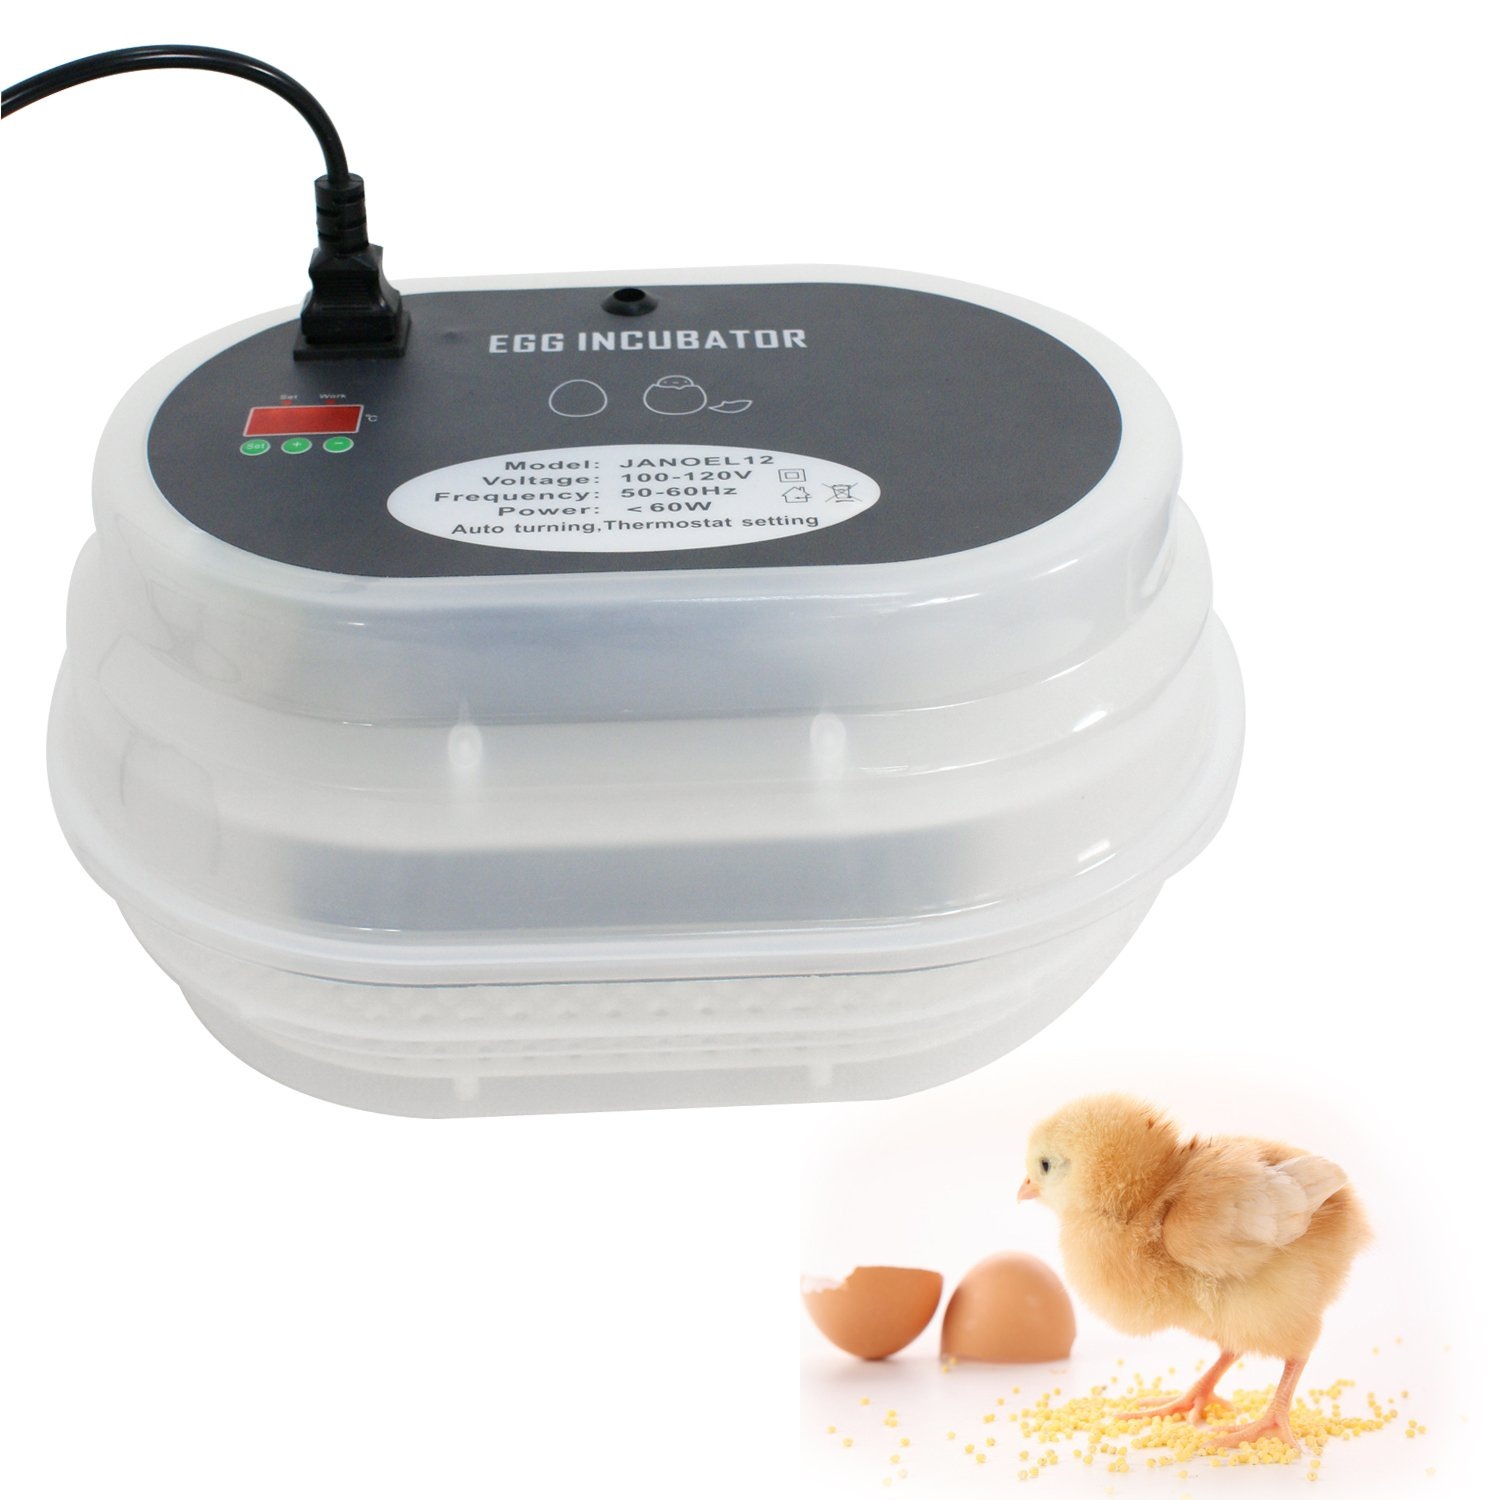 Smartxchoices Digital Mini Egg Incubator 9-12 Eggs with Fully Automatic Turning Humidity Control Poultry Hatcher for Chickens Ducks Goose Birds by Smartxchoices